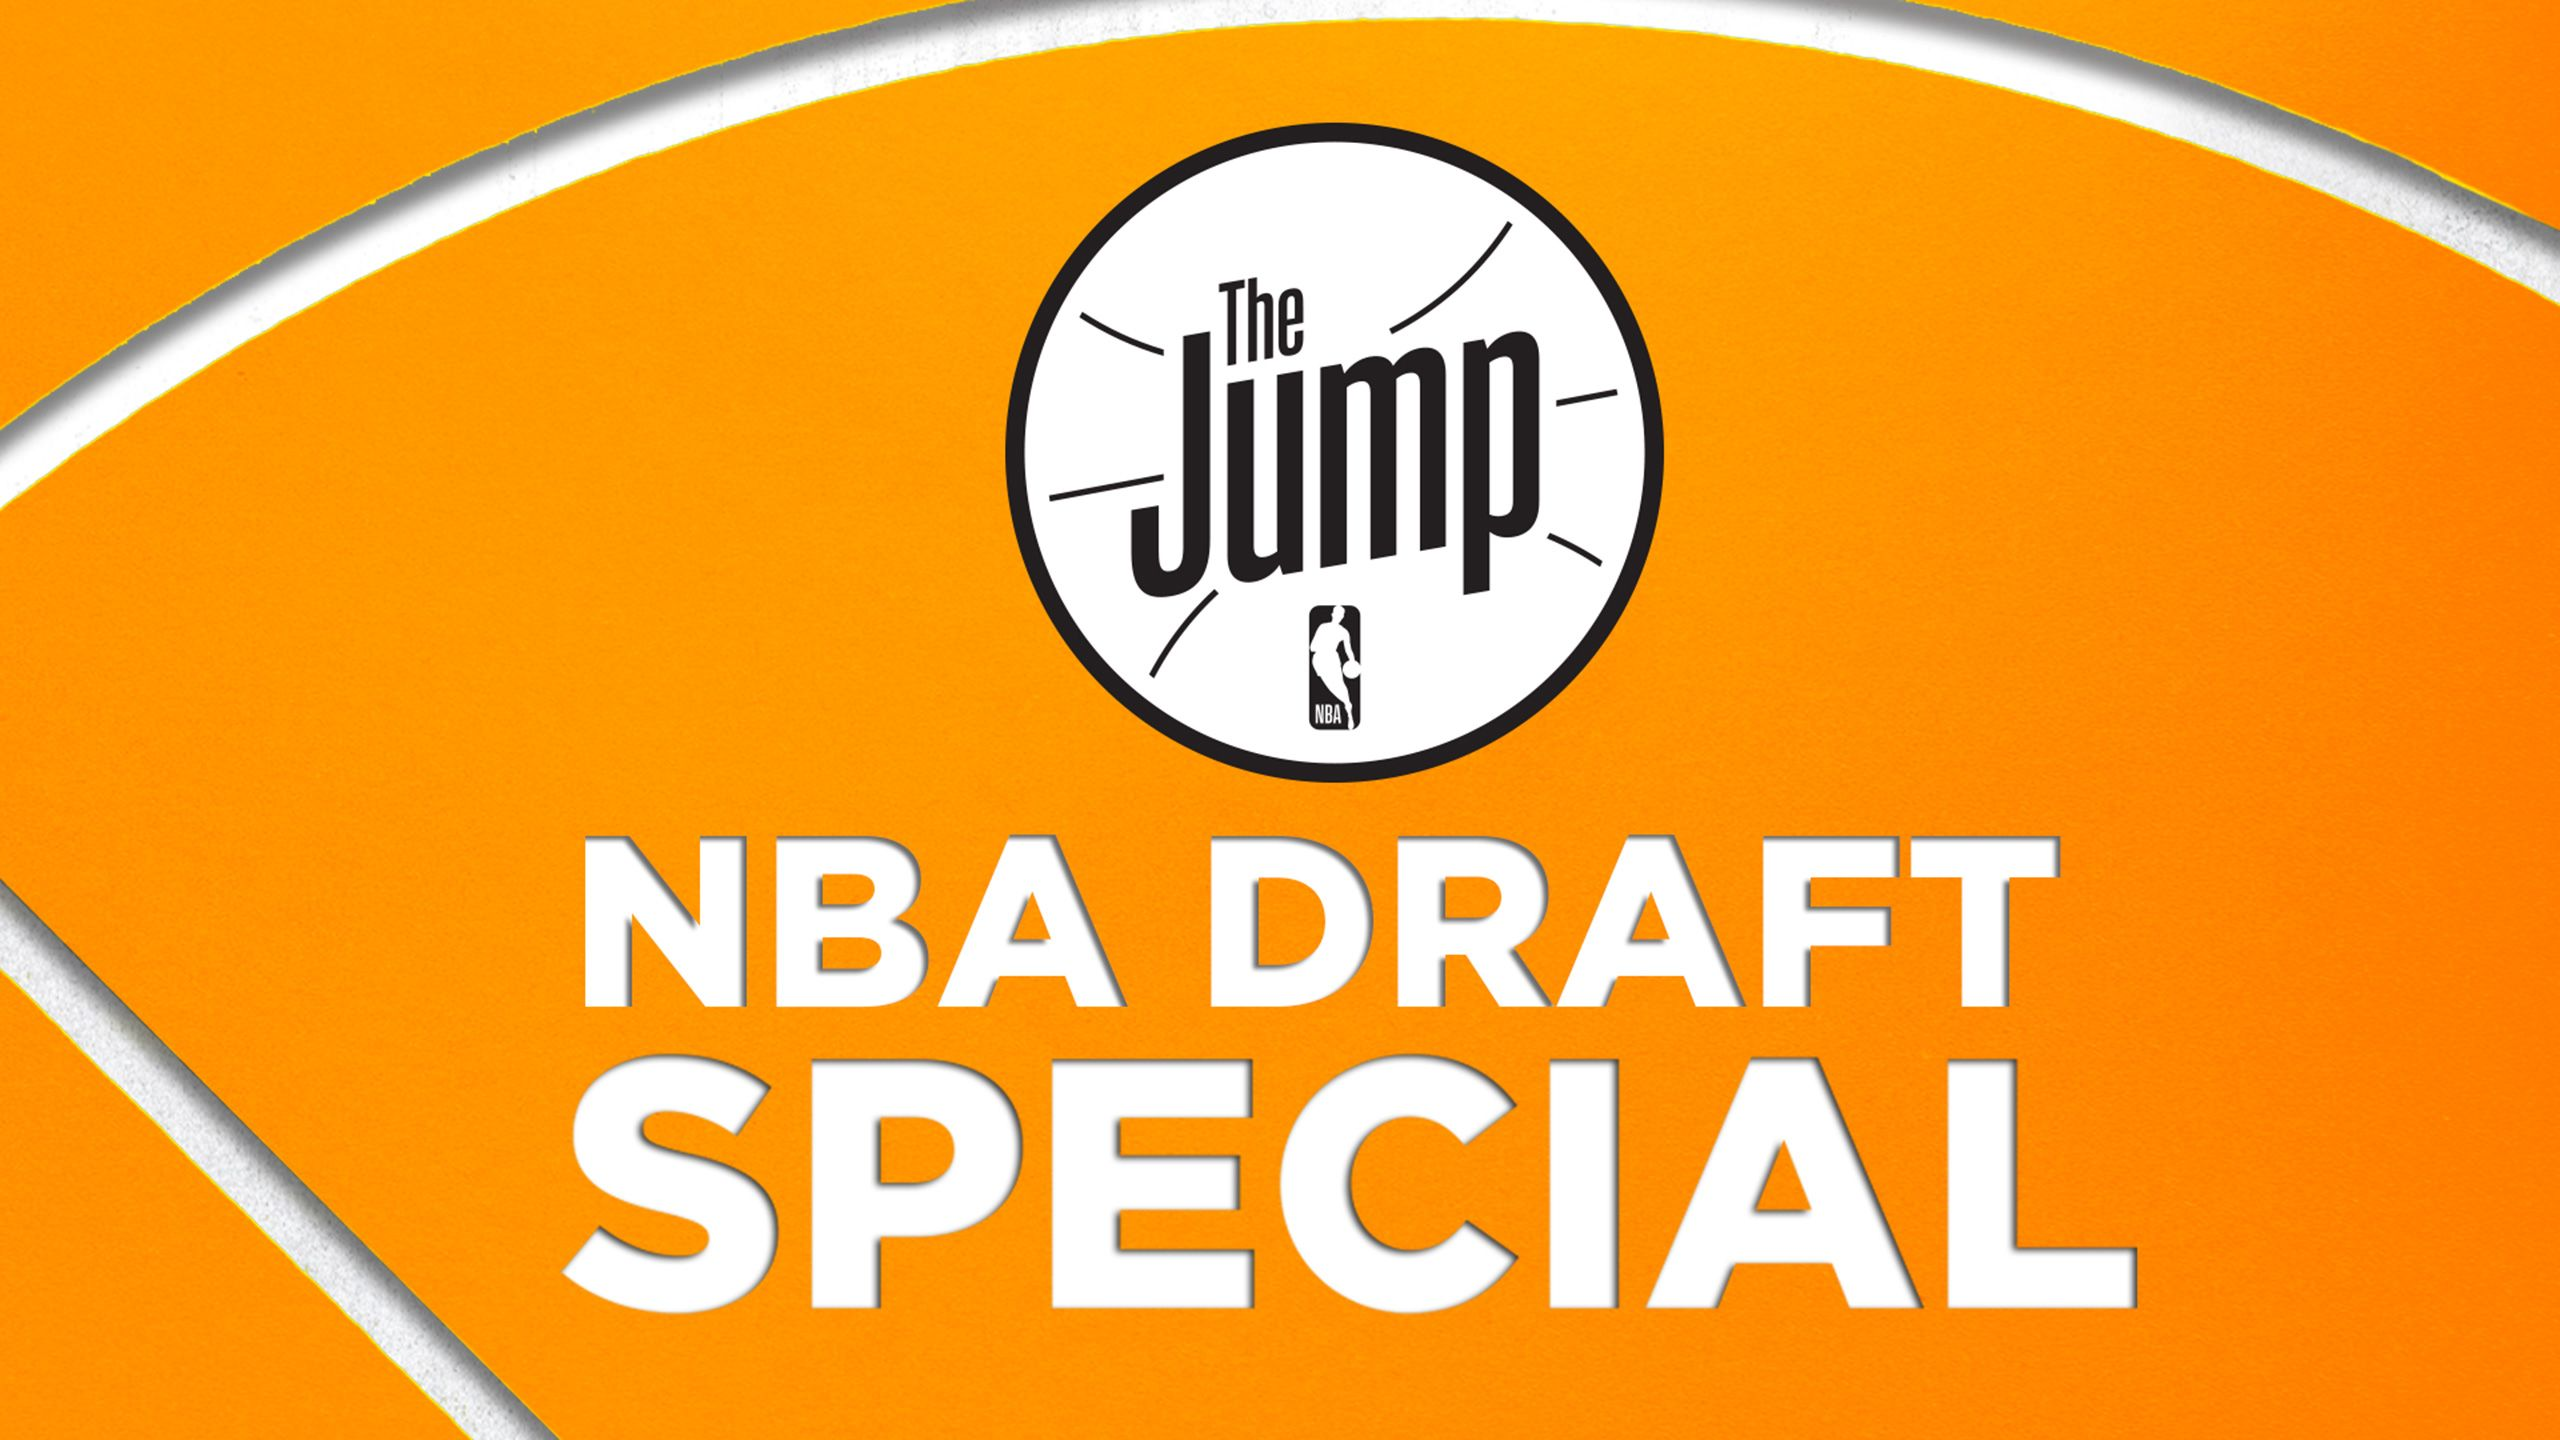 The Jump NBA Draft Special presented by State Farm